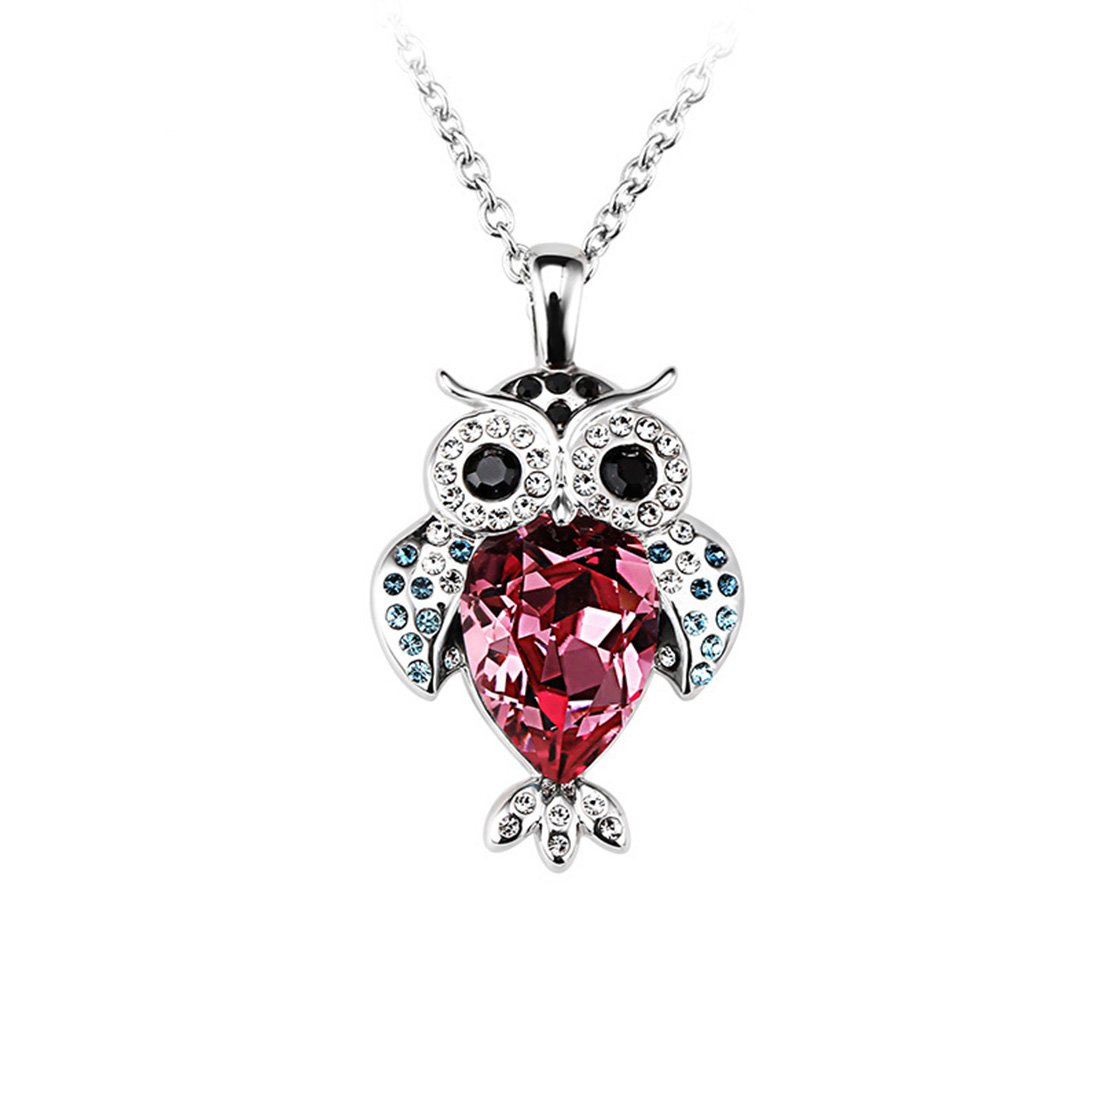 FANSING Jewelry Rhodium Plating Raindrop Shaped Austrian Crystal Owl Pendant Necklaces for Women & Girls Rose Red FS FS06N0974RS